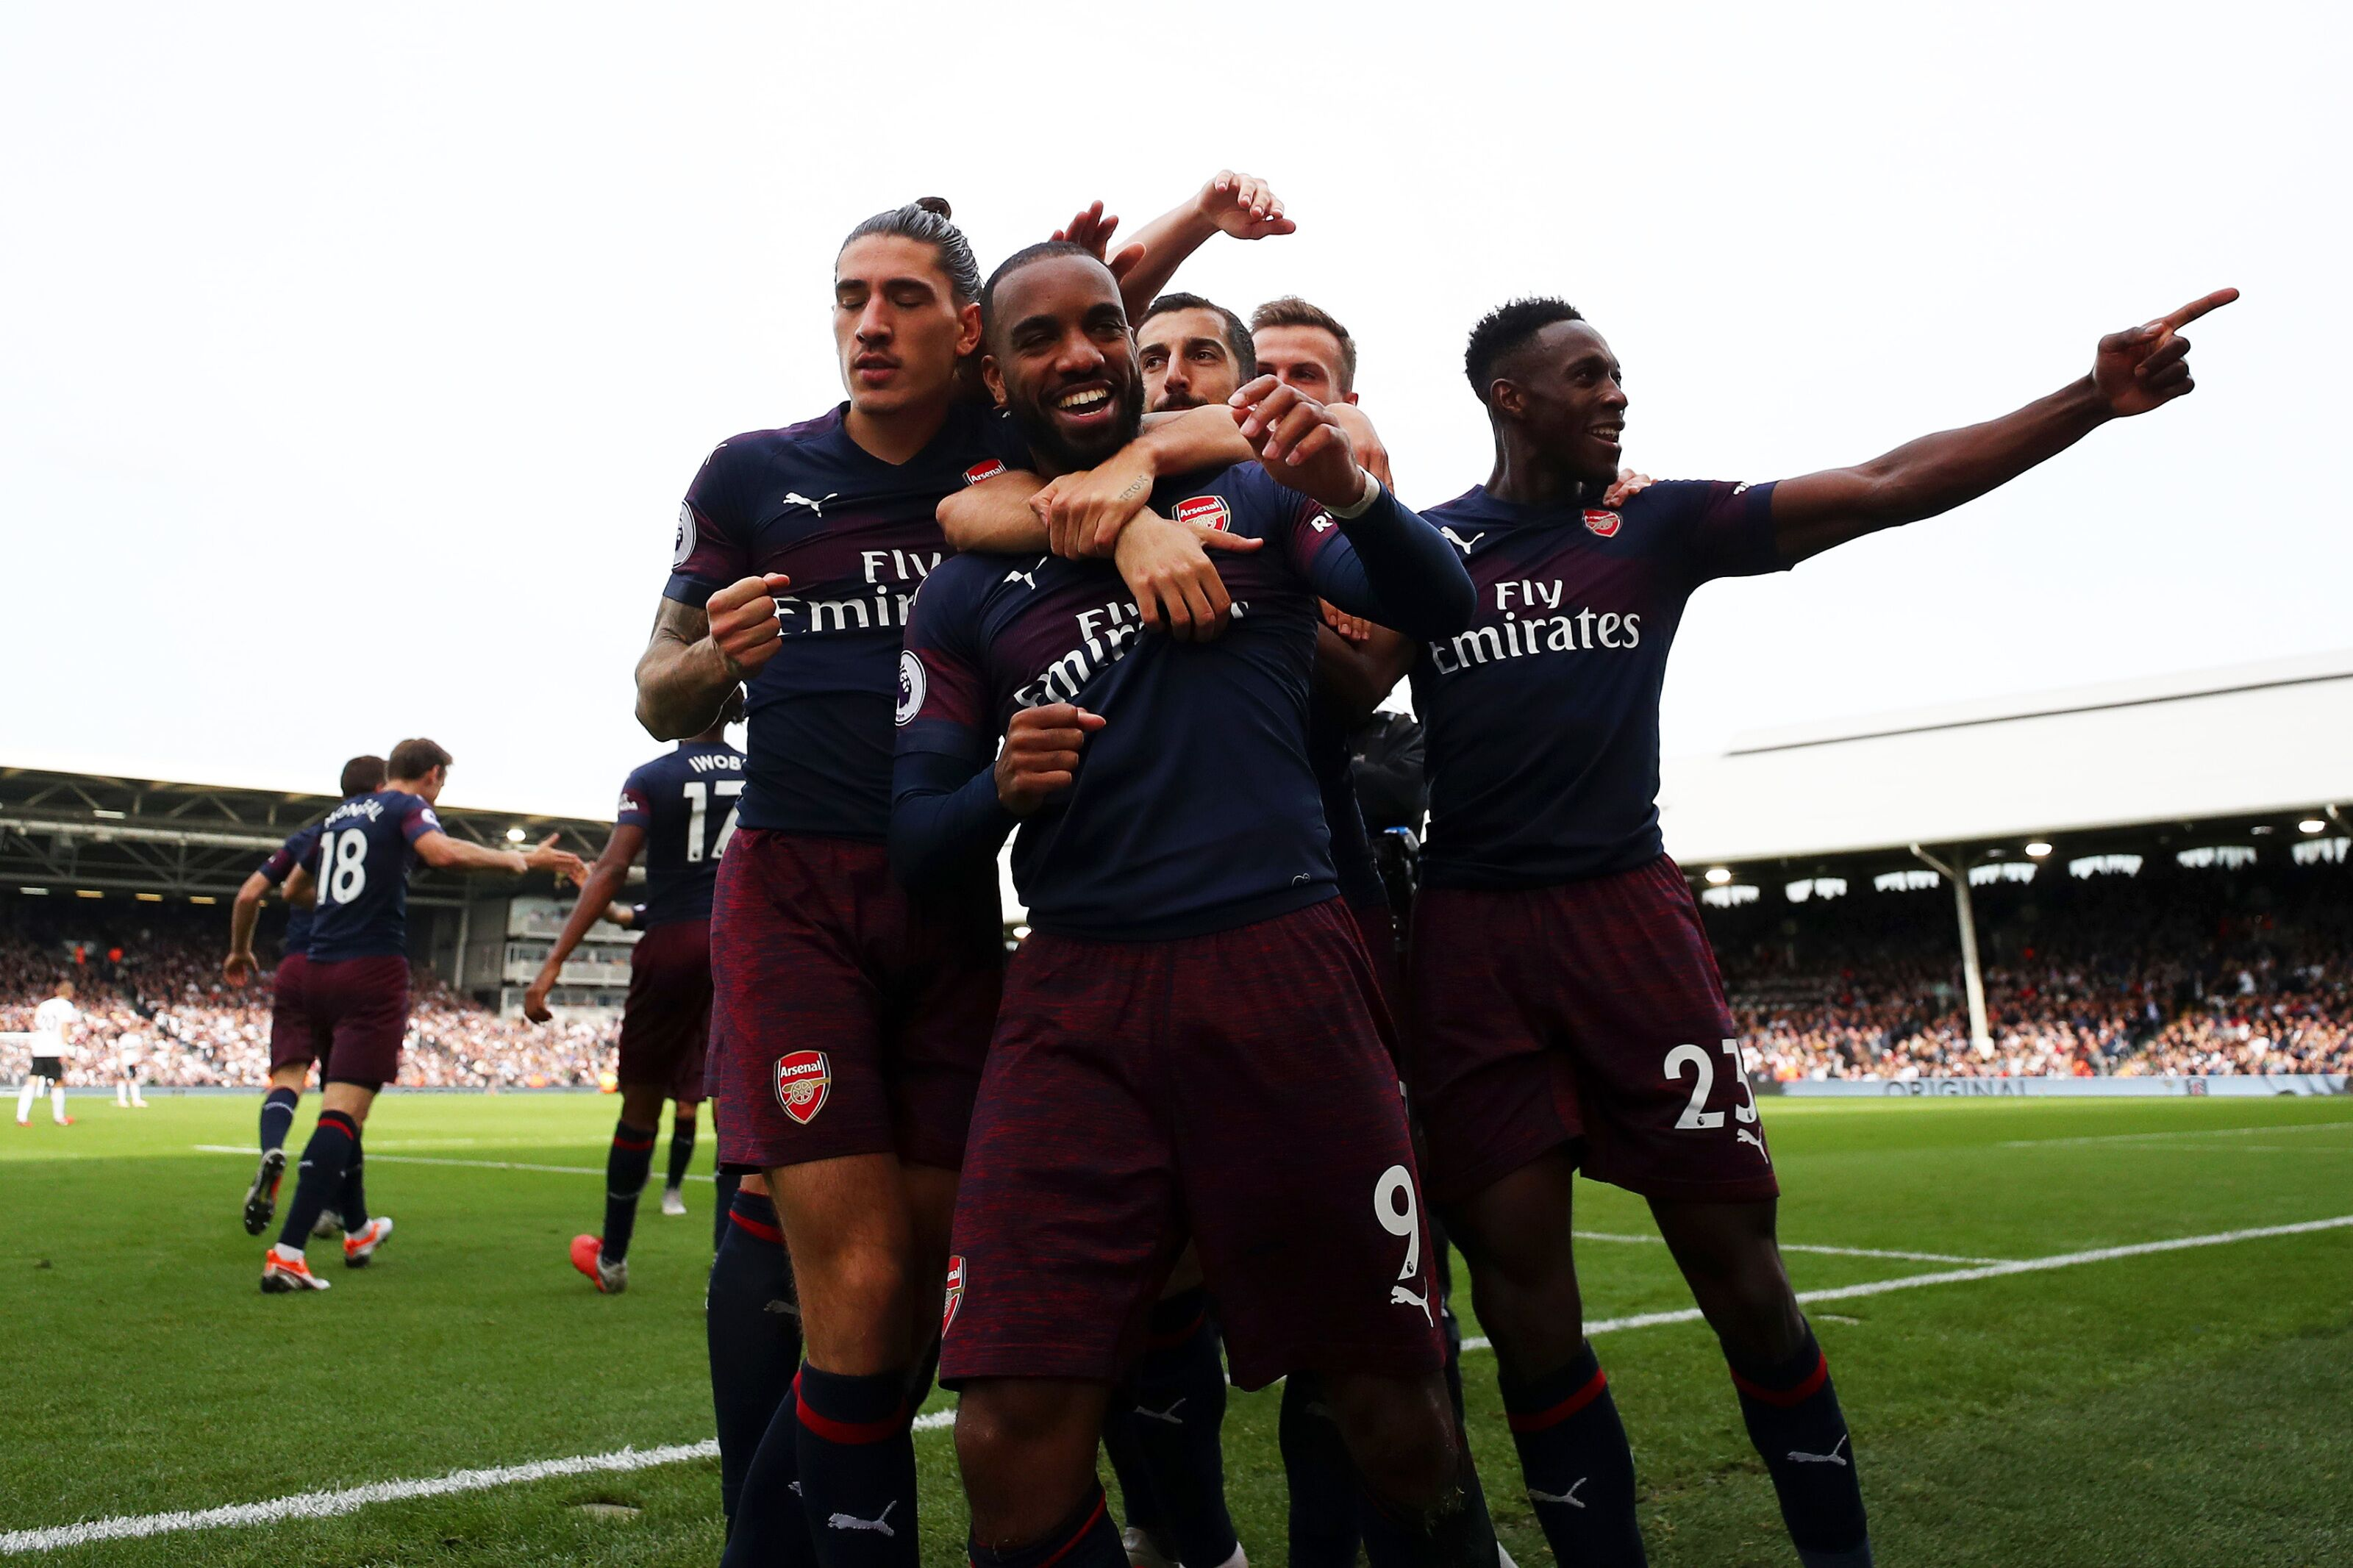 Arsenal: Growing into games cause for concern?